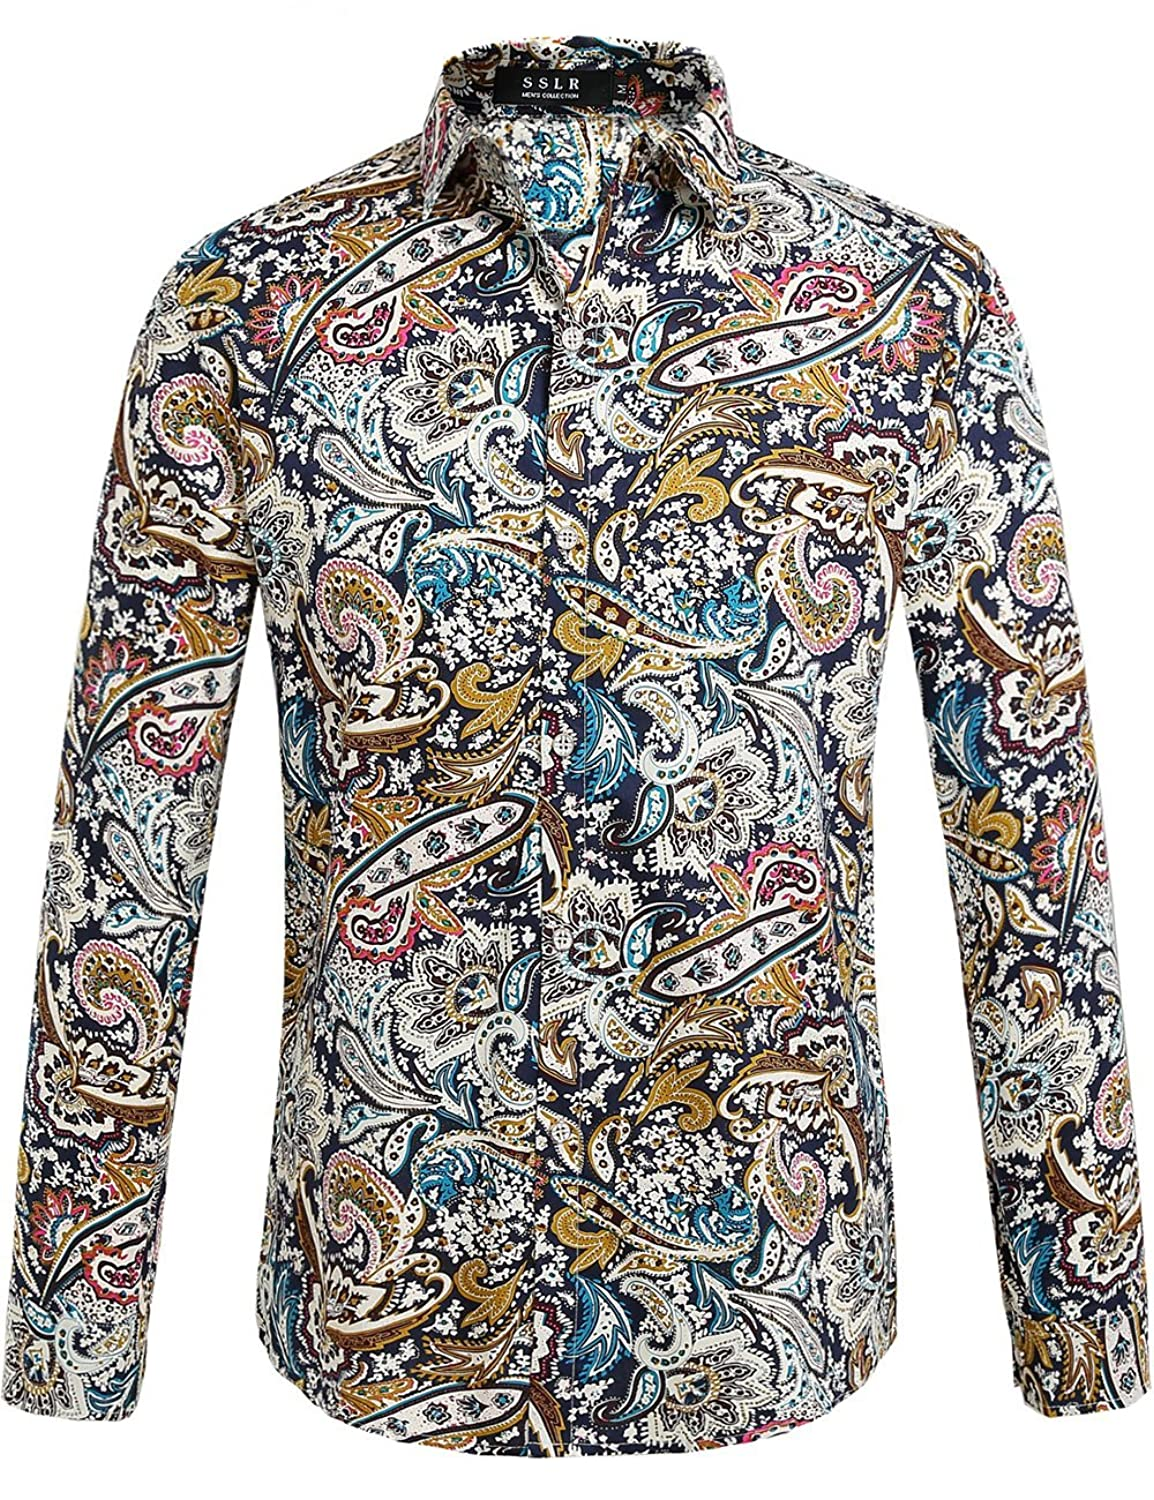 Vintage Shirts – Mens – Retro Shirts SSLR Mens Paisley Cotton Long Sleeve Casual Button Down Shirt $26.00 AT vintagedancer.com